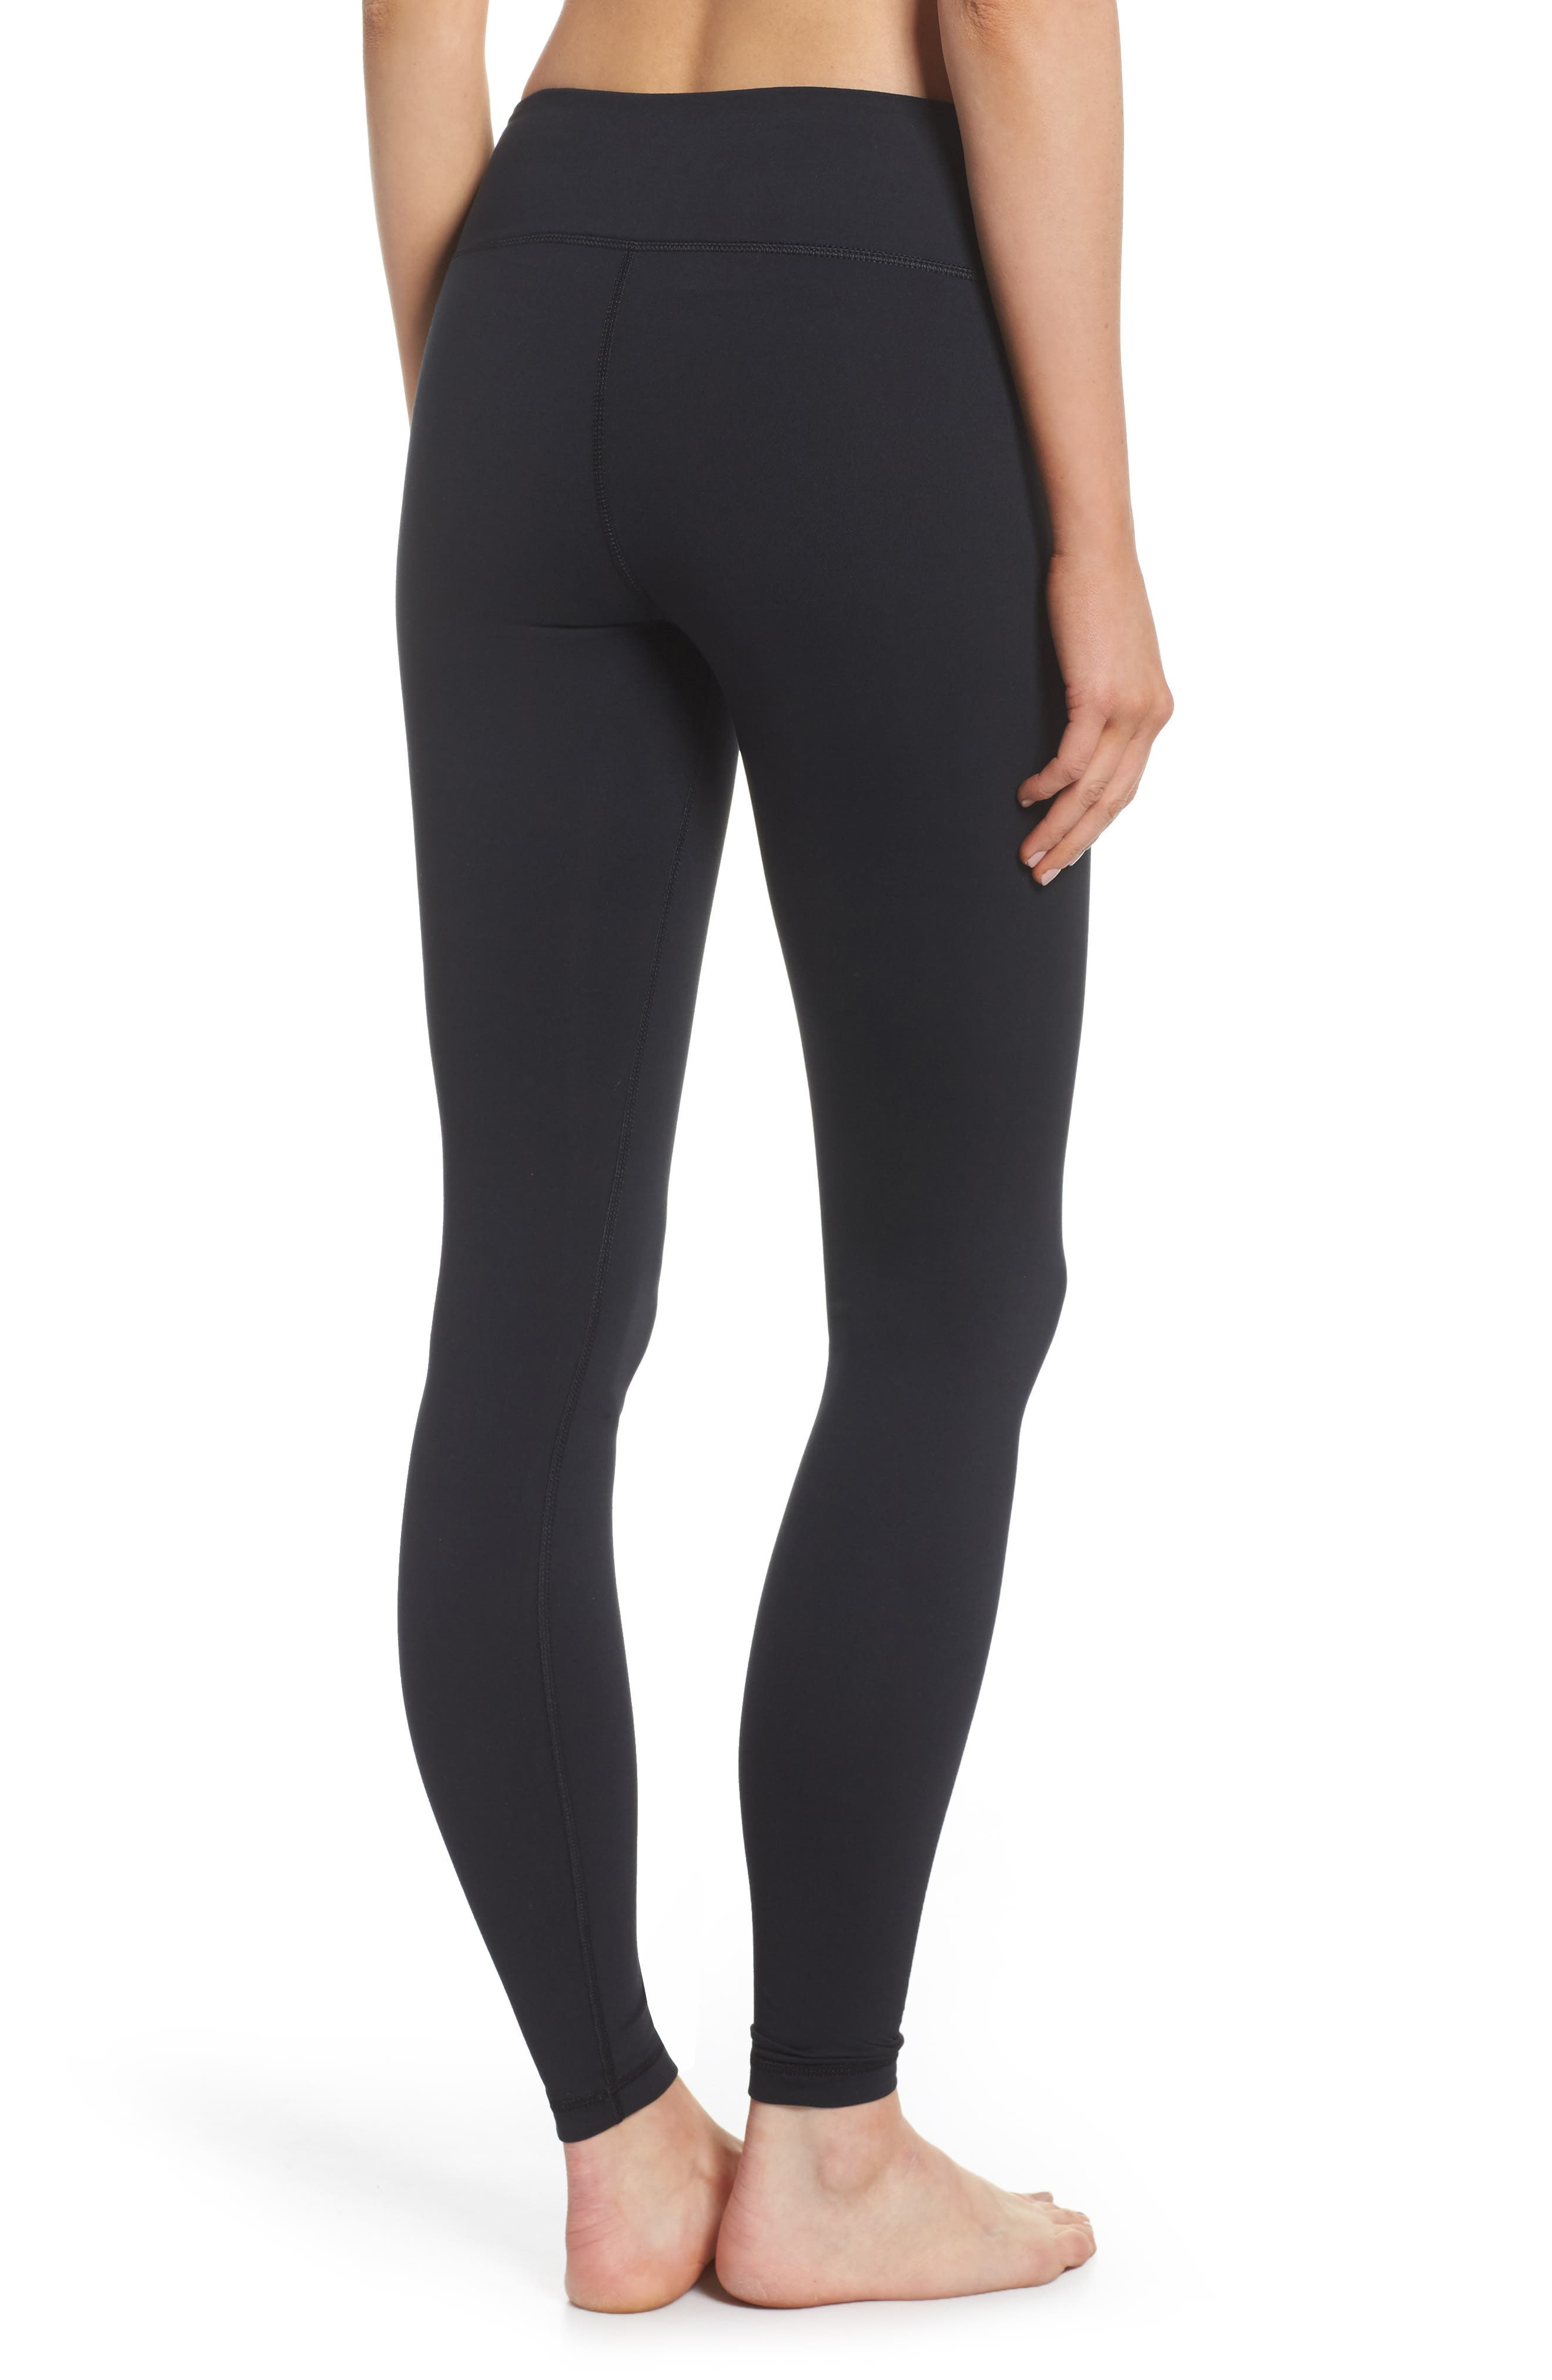 California Leggings,                             Alternate thumbnail 2, color,                             001